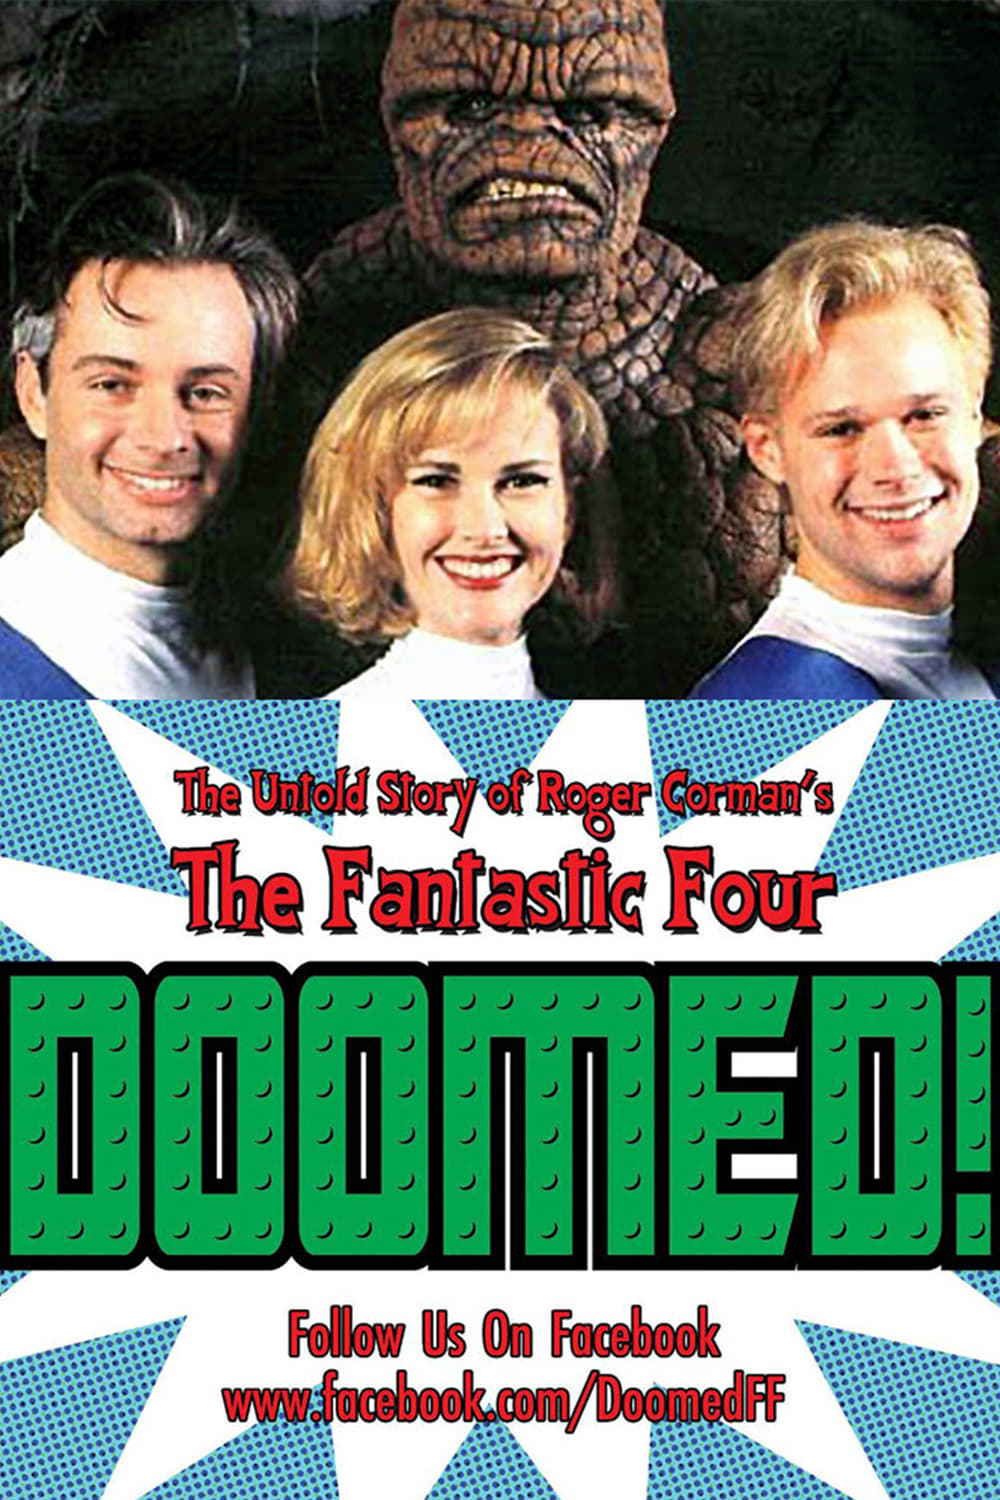 Doomed! The Untold Story of Roger Corman's The Fantastic Four (2015)